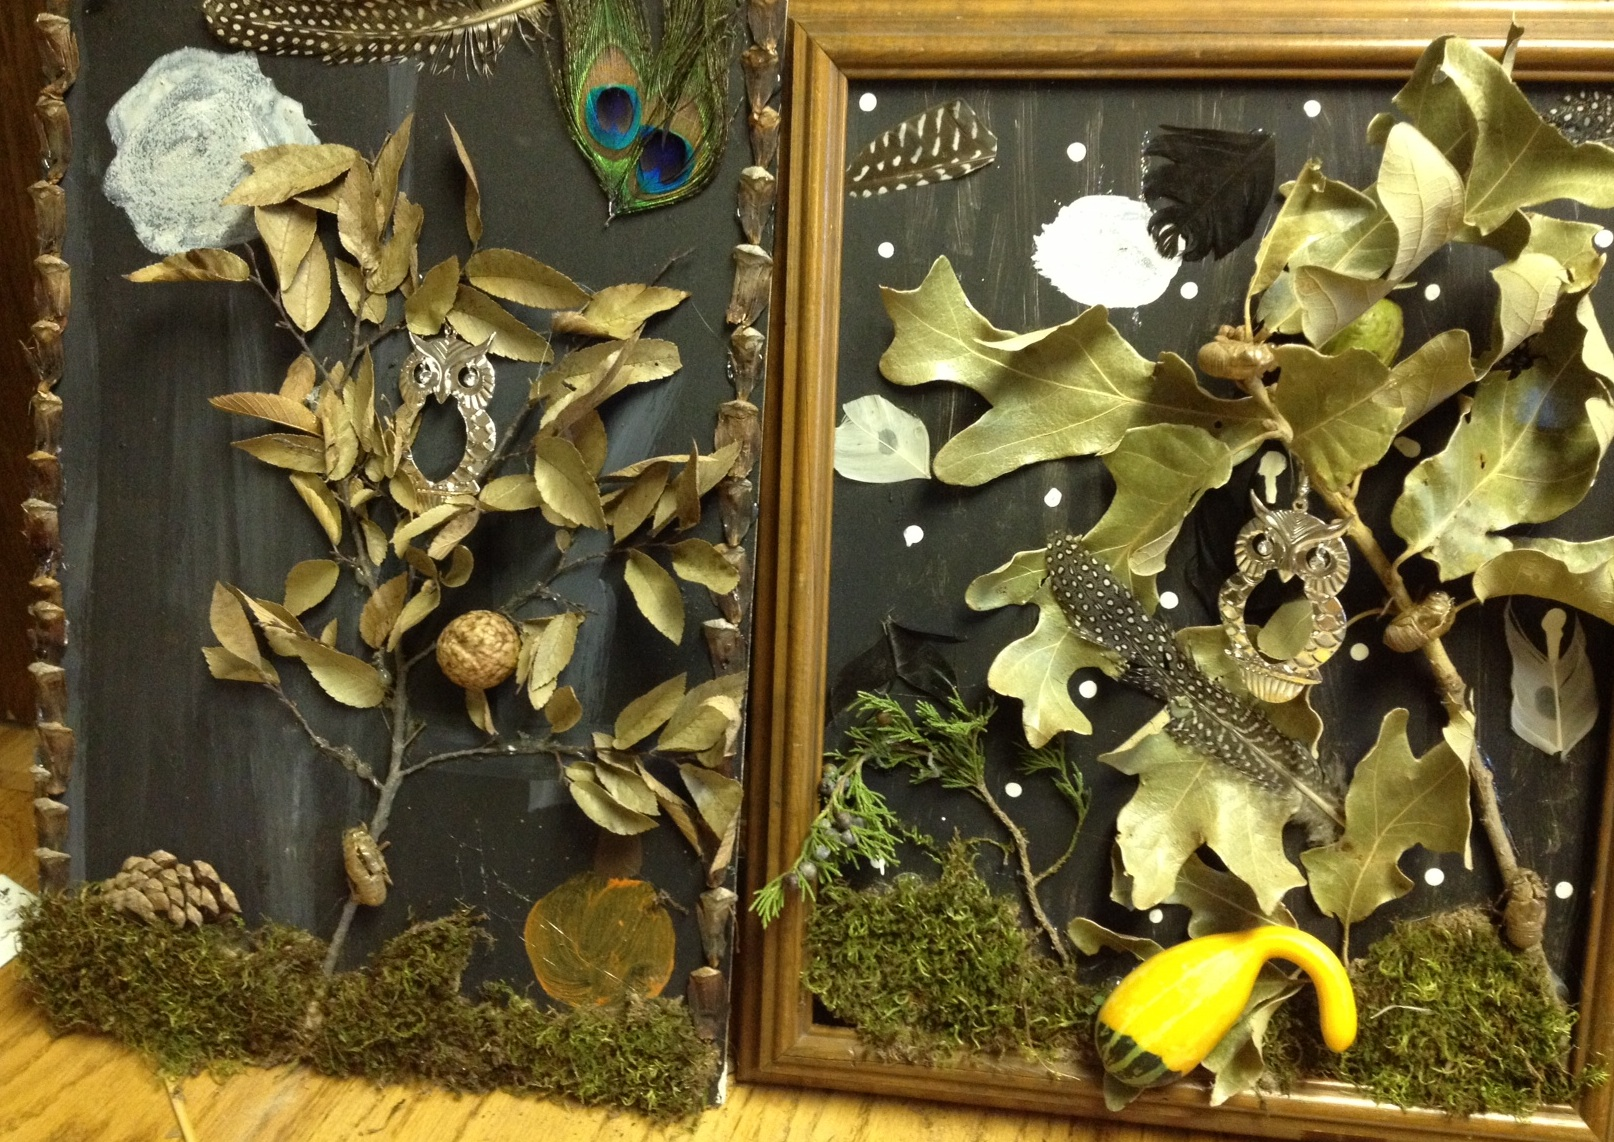 Create a nature collage out of things you find outside.